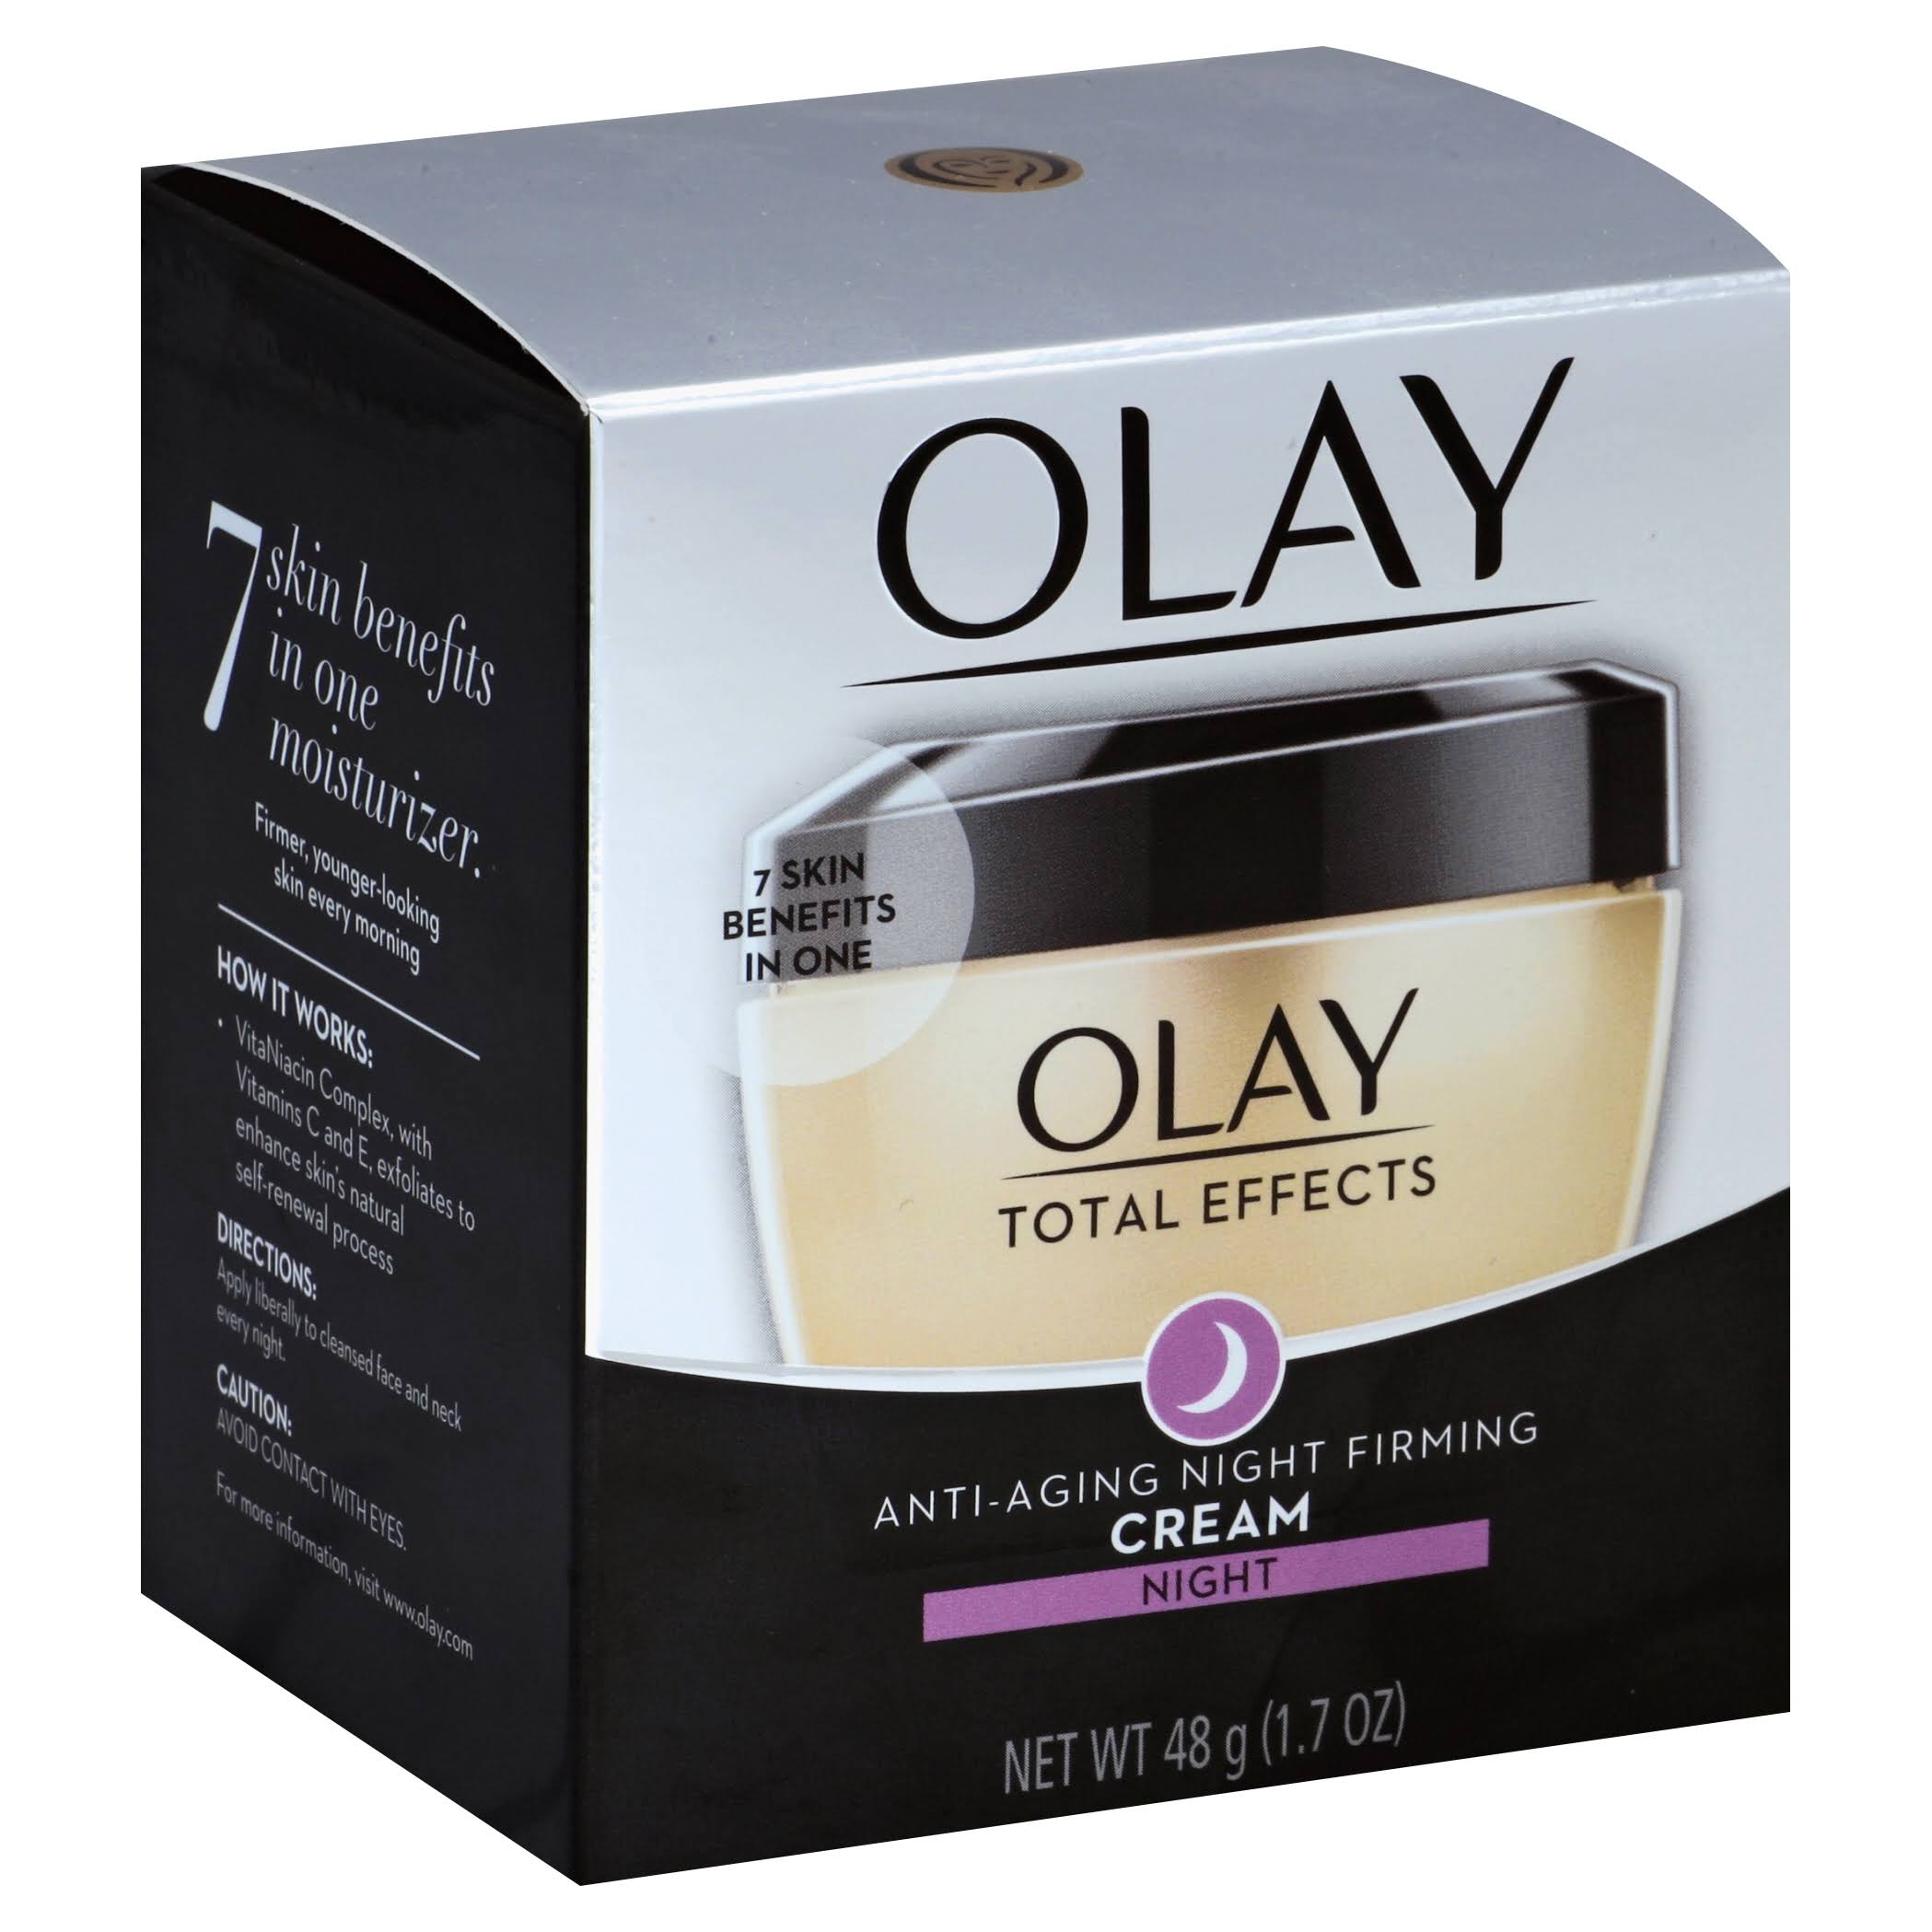 Olay Total Effects Anti Aging Night Firming Cream - 1.7oz